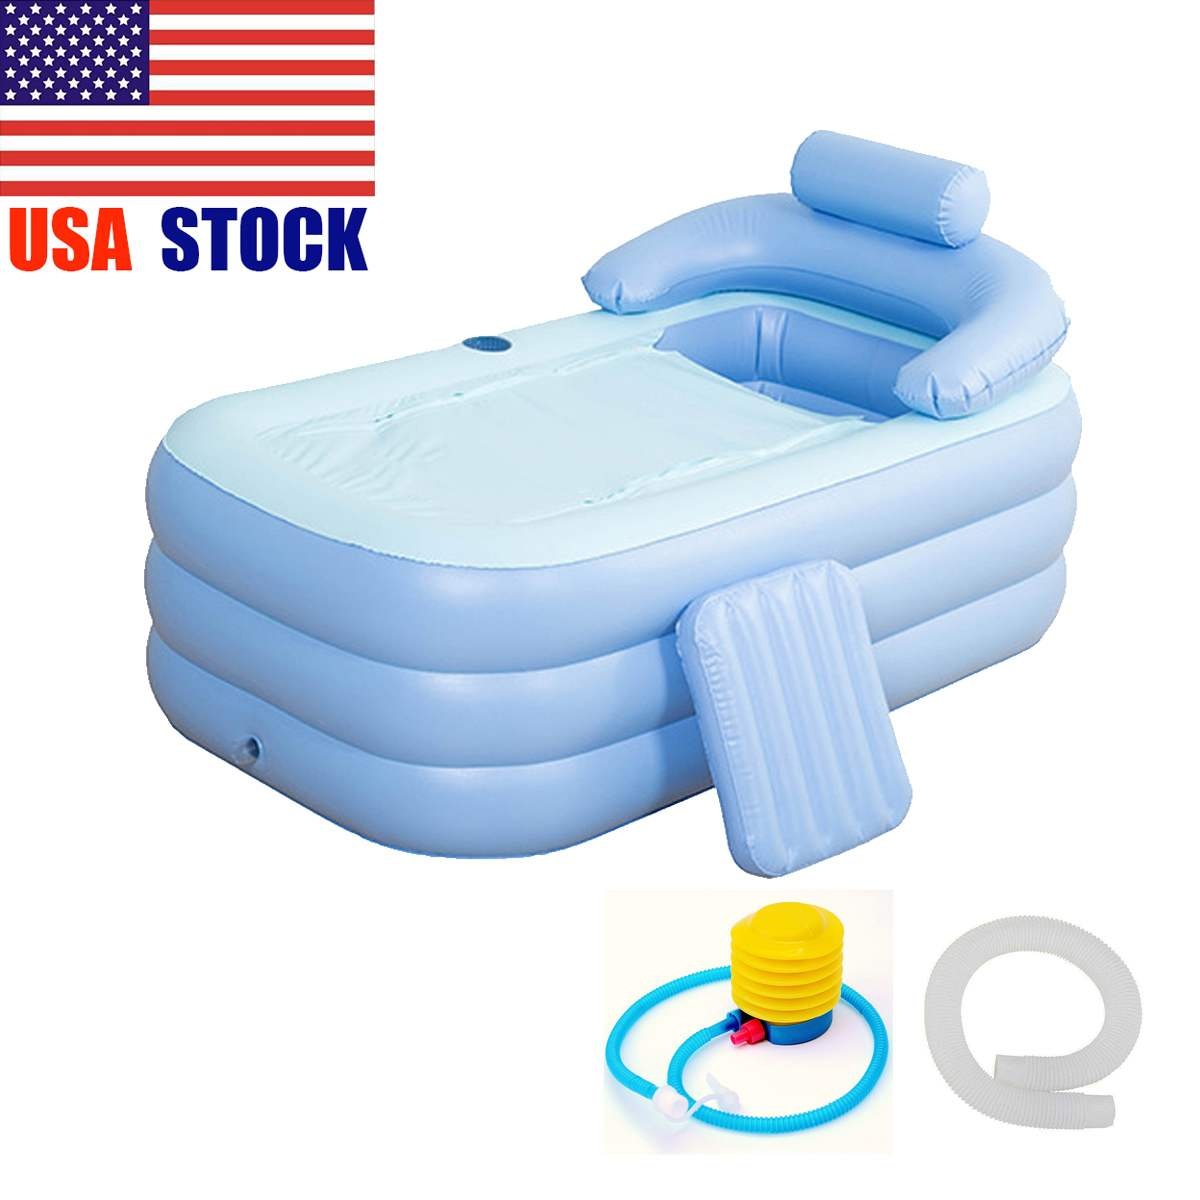 160 *84* 64cm Blue Large Size PVC Folding Portable Inflatable Bath Bathtub For Adults W/ Foot Pump SPA Household Inflatable Tub